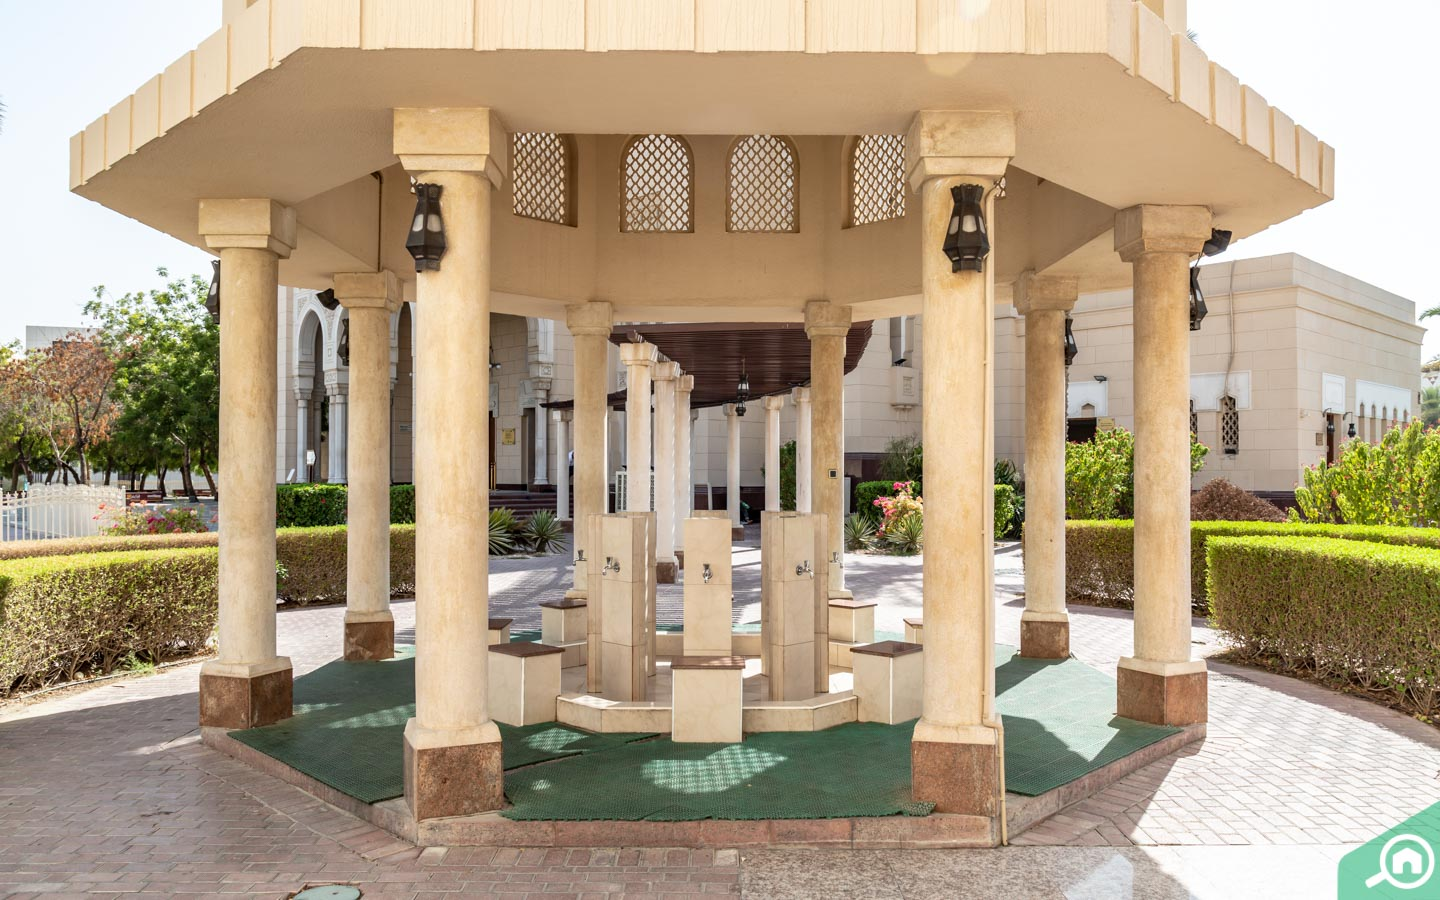 Ablution area of the mosque